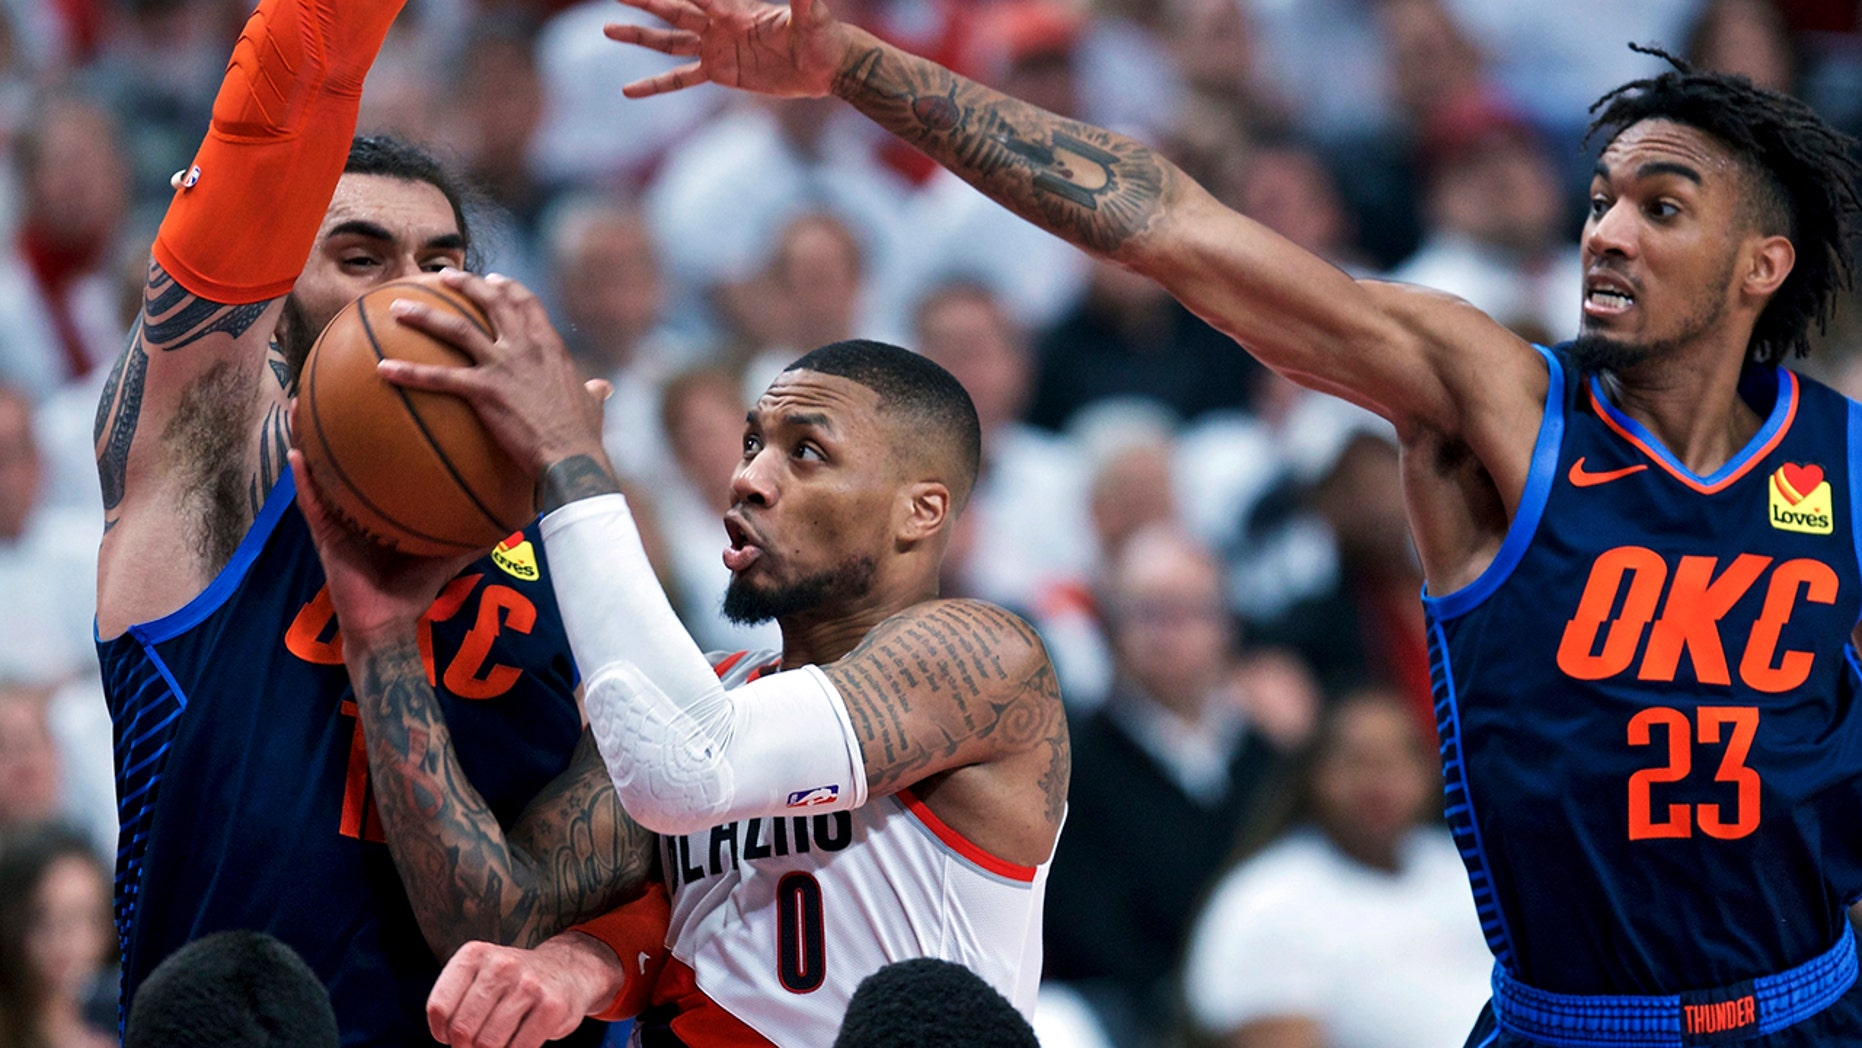 Portland Trail Blazers guard Damian Lillard, center, shoots between Oklahoma City Thunder center Steven Adams, left, and guard Terrance Ferguson, right, during the second half of Game 5 of an NBA basketball first-round playoff series, Tuesday, April 23, 2019, in Portland, Ore. The Trail Blazers won 118-115. (AP Photo/Craig Mitchelldyer)